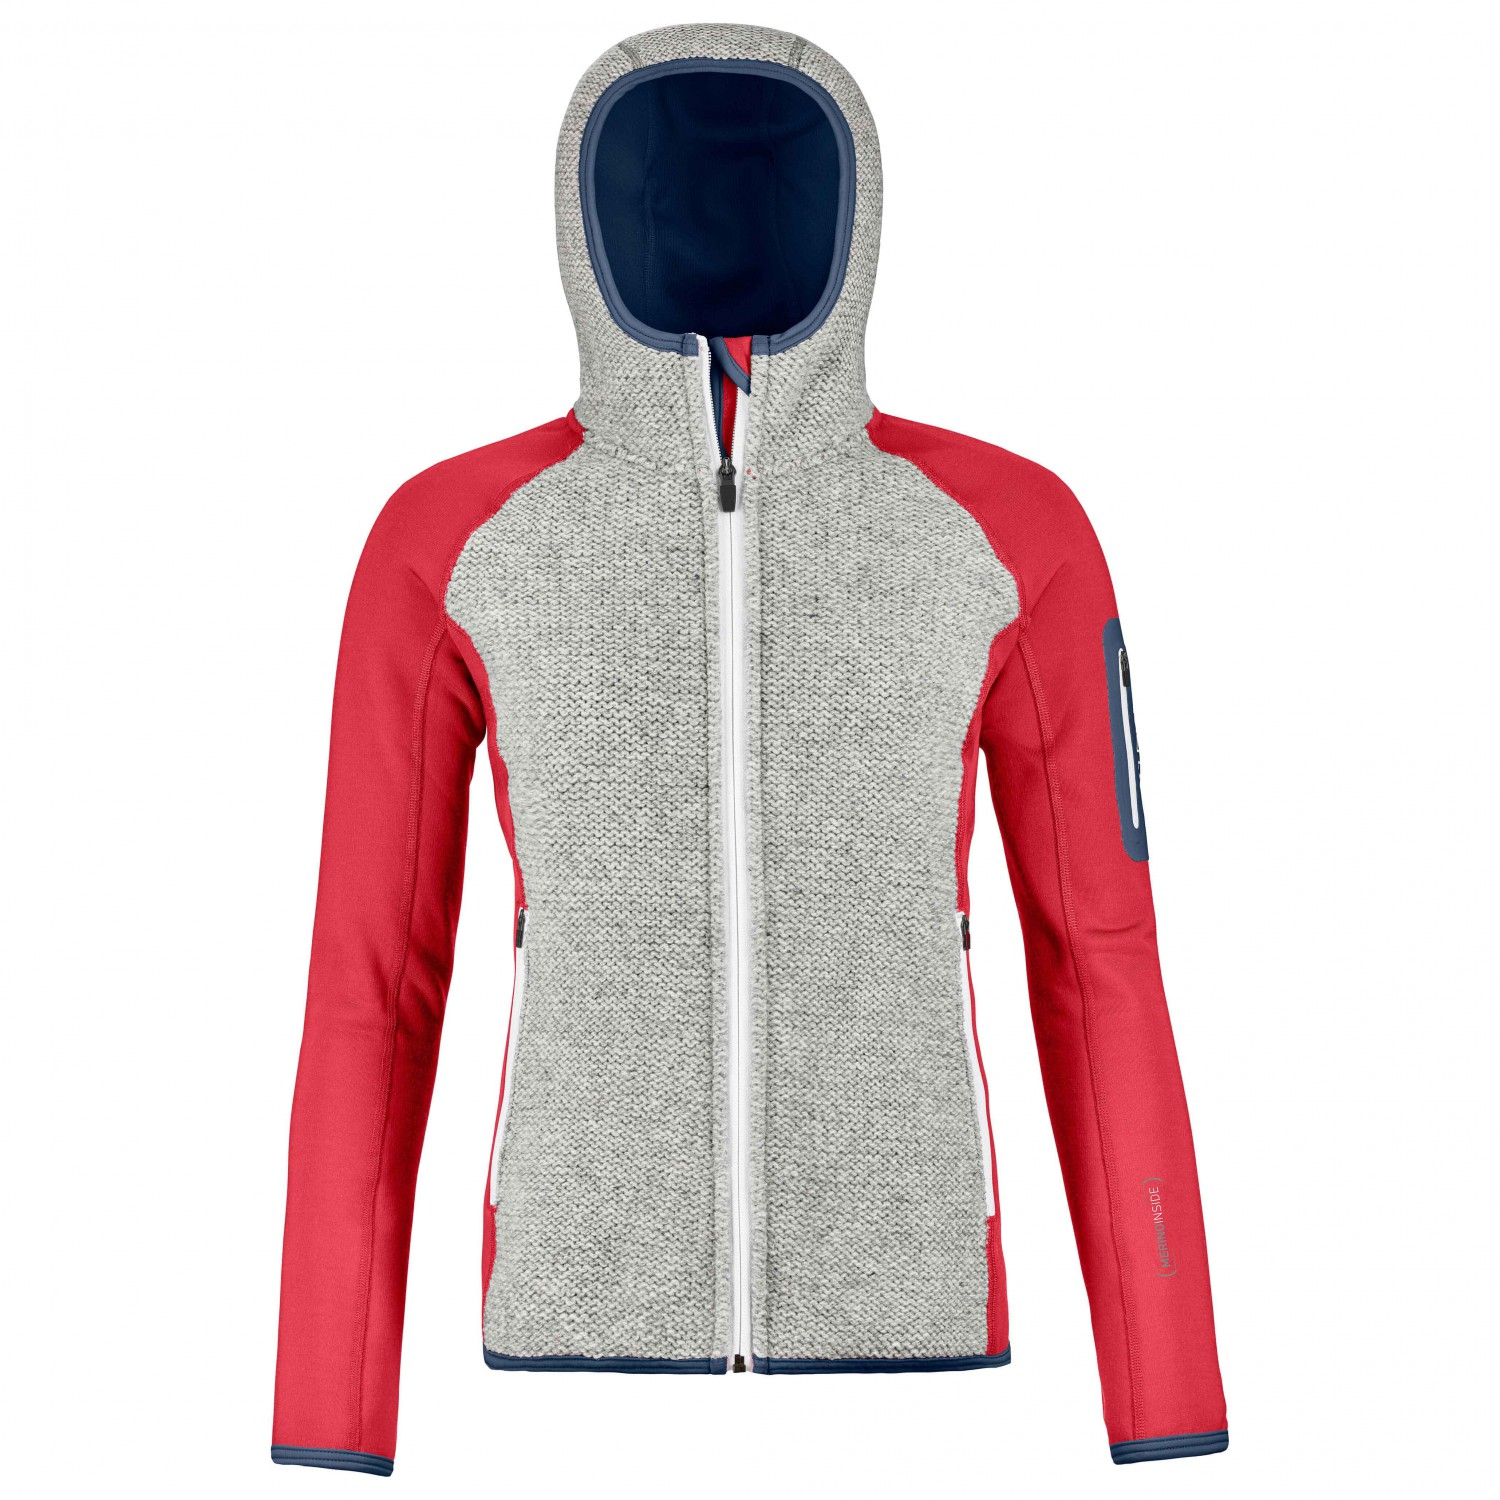 Ortovox Fleece Plus Classic Knit Hoody Wool Jacket Women S Free Uk Delivery Alpinetrek Co Uk